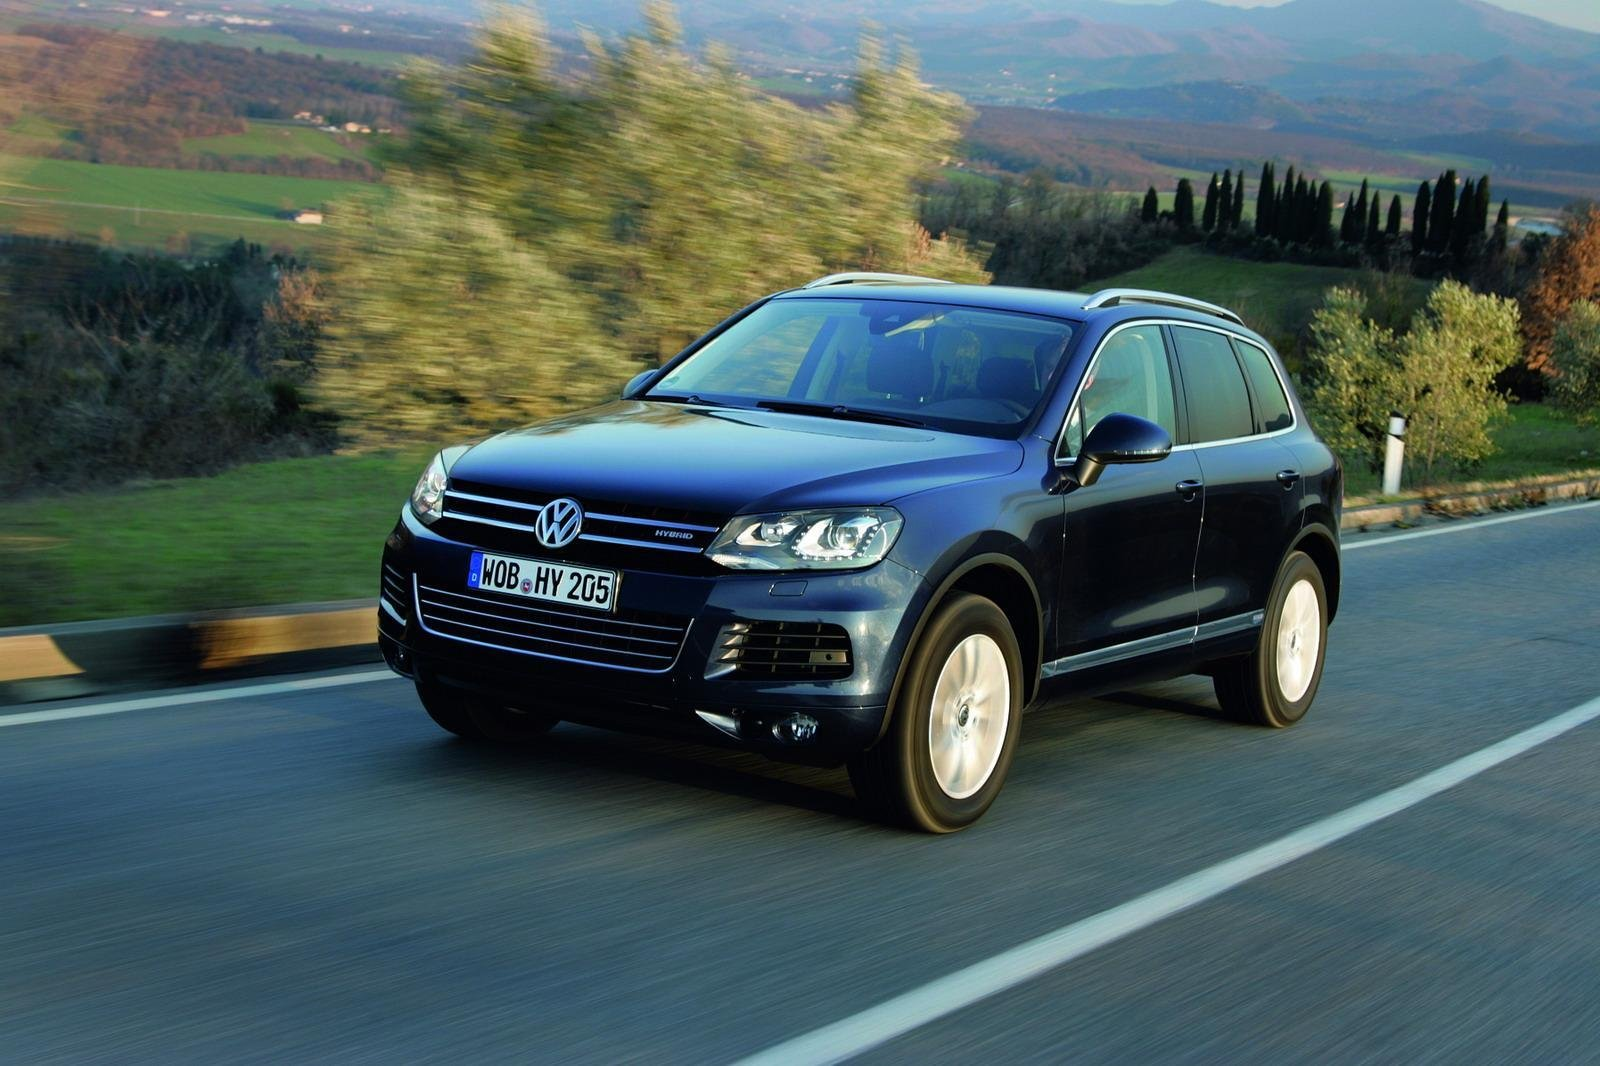 2011 volkswagen touareg hybrid review gallery top speed. Black Bedroom Furniture Sets. Home Design Ideas